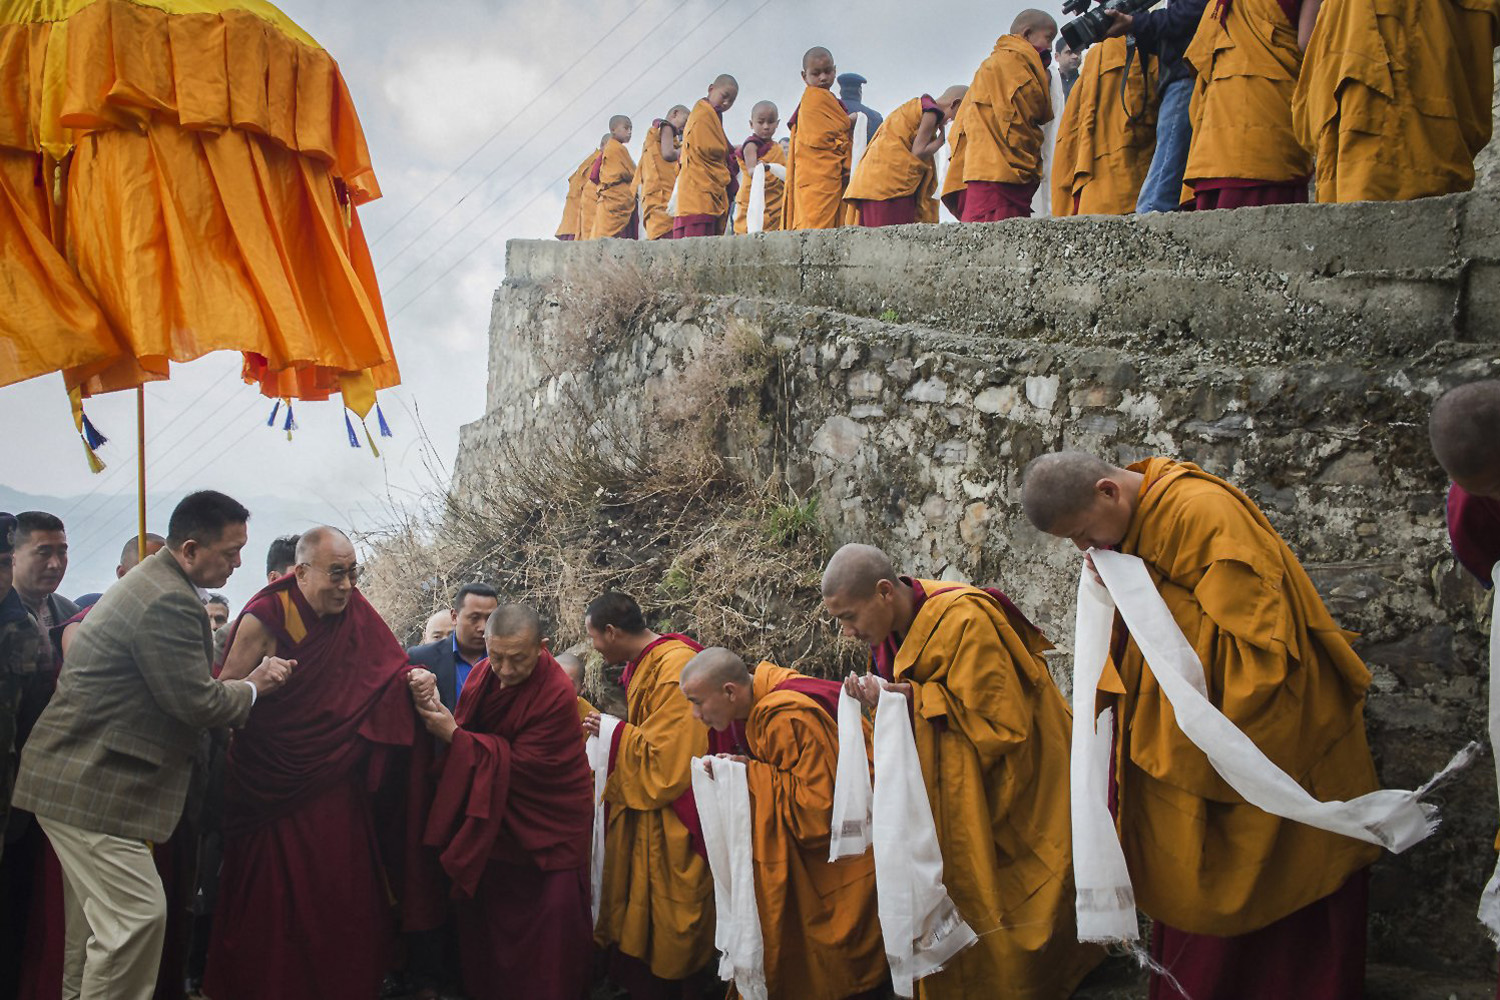 Mar. 18, 2014. Tibetan Buddhist monks holding ceremonial scarfs stand in a line to welcome their spiritual leader the Dalai Lama, fourth left, as he arrives at the Jhonang Takten Phuntsok Choeling monastery in Shimla, India.